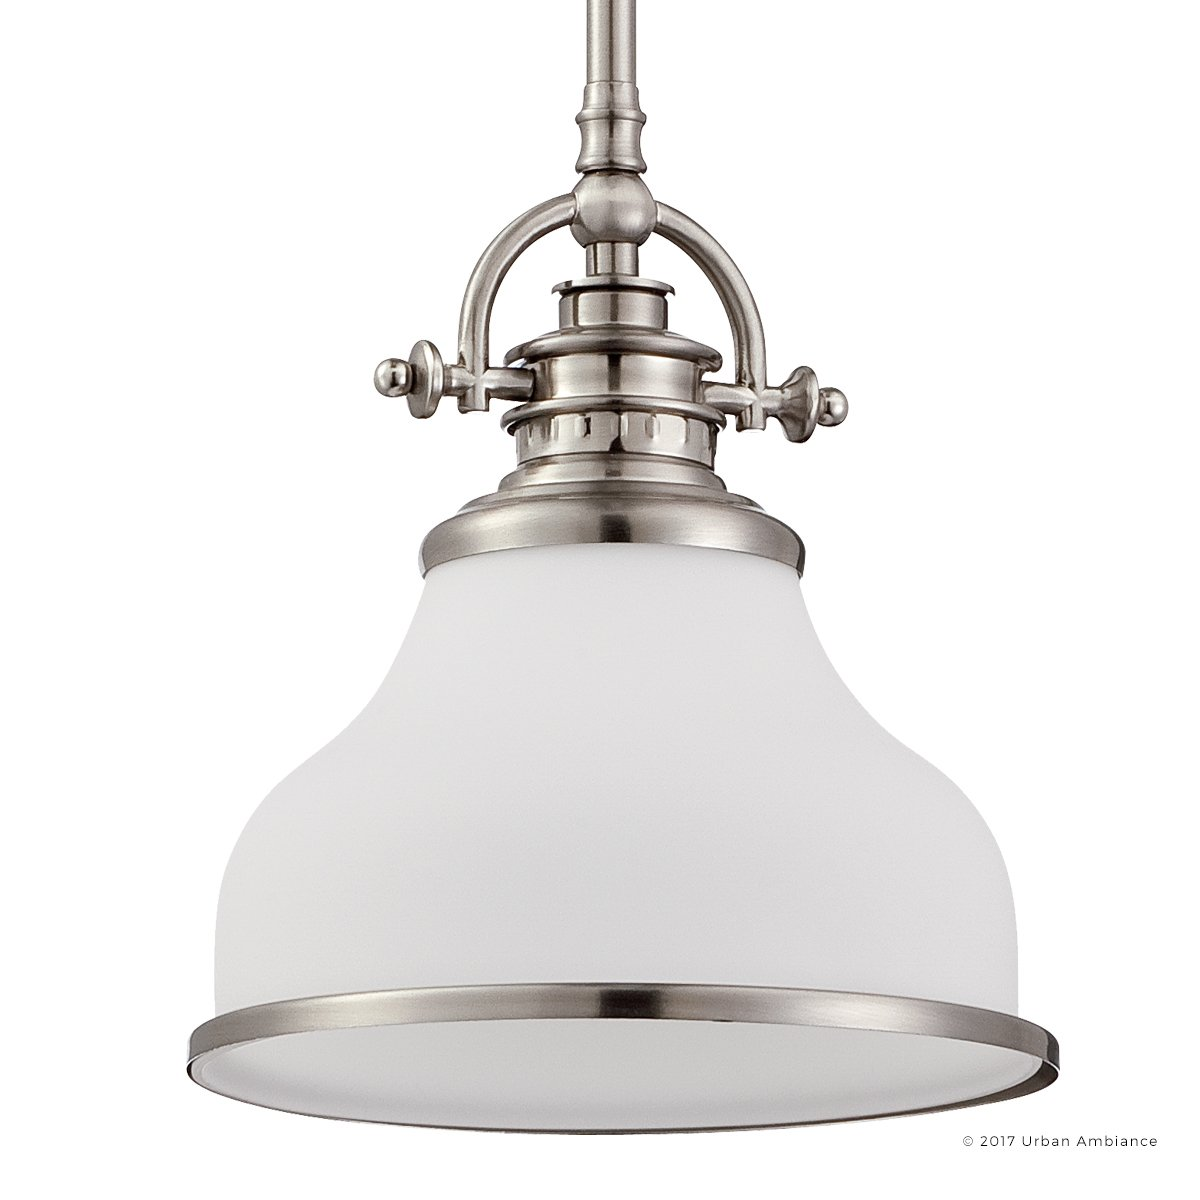 Luxury Industrial Pendant Light, Small Size: 9.5''H x 8''W, with Americana Style Elements, Nostalgic Design, Pretty Brushed Nickel Finish and Opal Etched Glass, UQL2336 by Urban Ambiance by Urban Ambiance (Image #1)